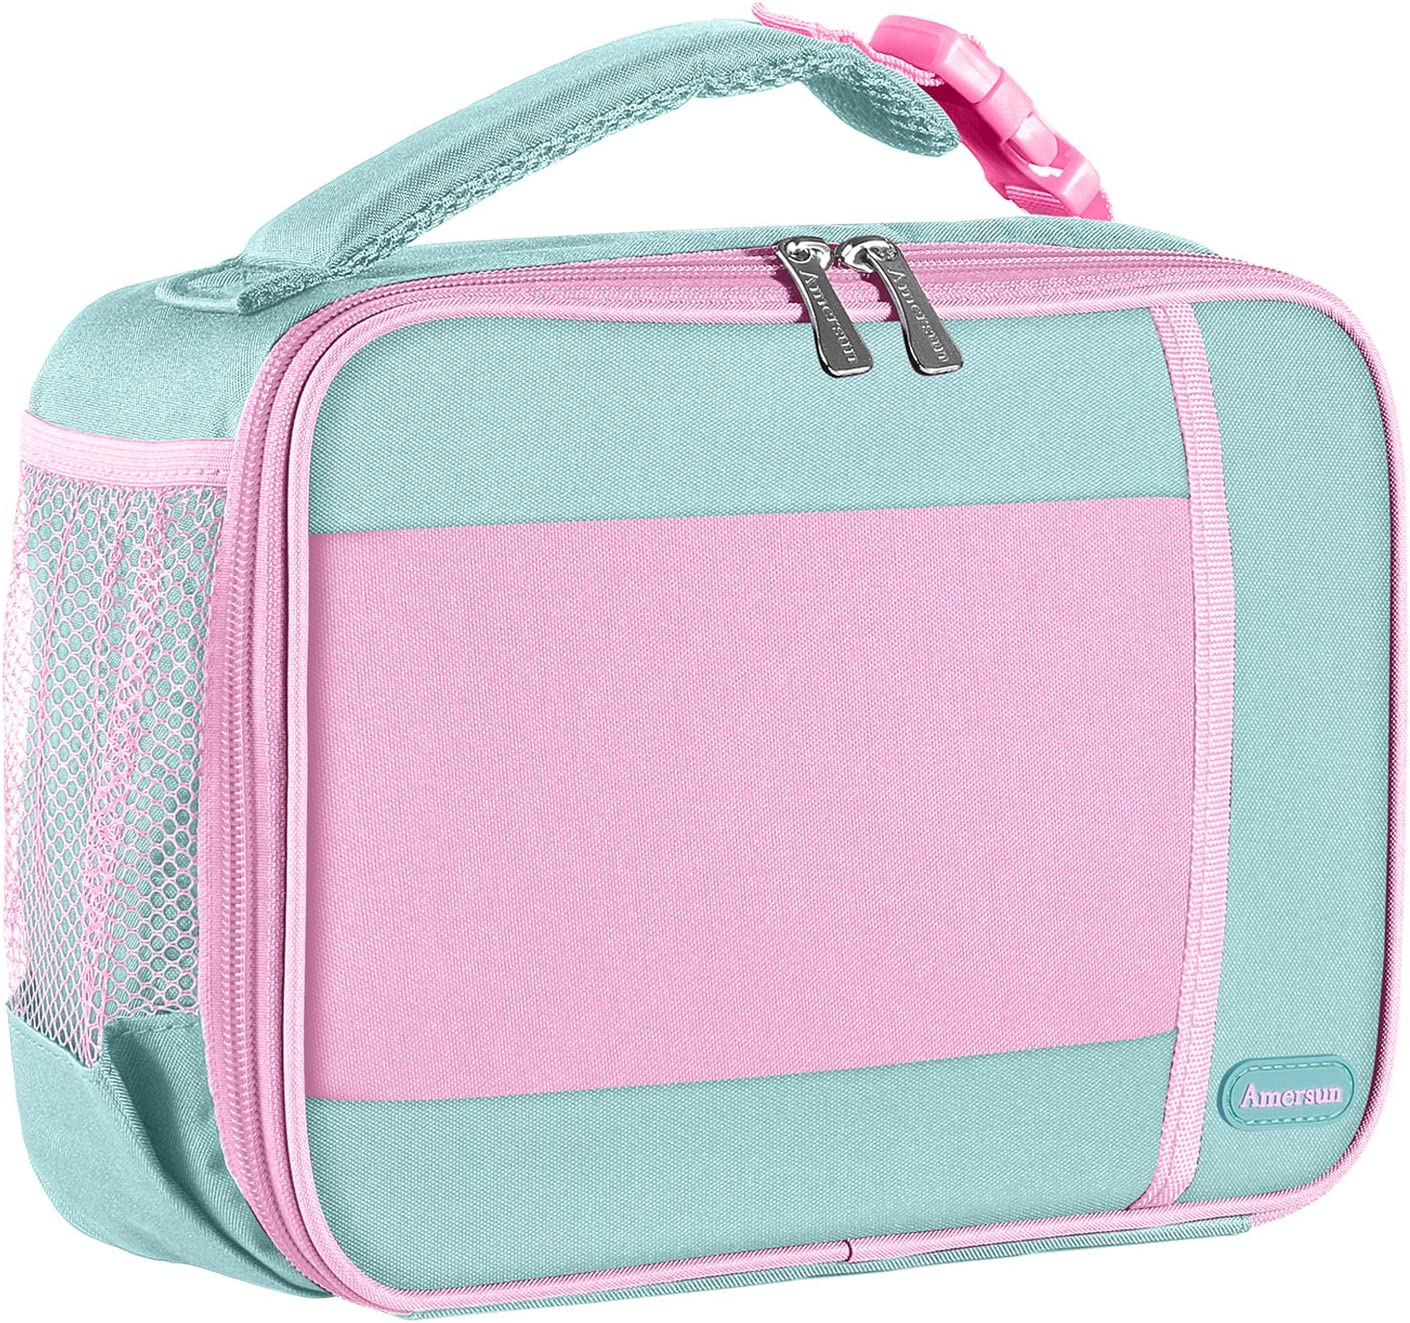 Kids Lunch Box with Supper Padded Inner Keep Food Cold Warm for Longer Time,Amersun Leak-proof Solid Insulated School Lunch Bag with Multi-Pocket for Teen Boys Girls,CPC Certified,Light Blue+Pink